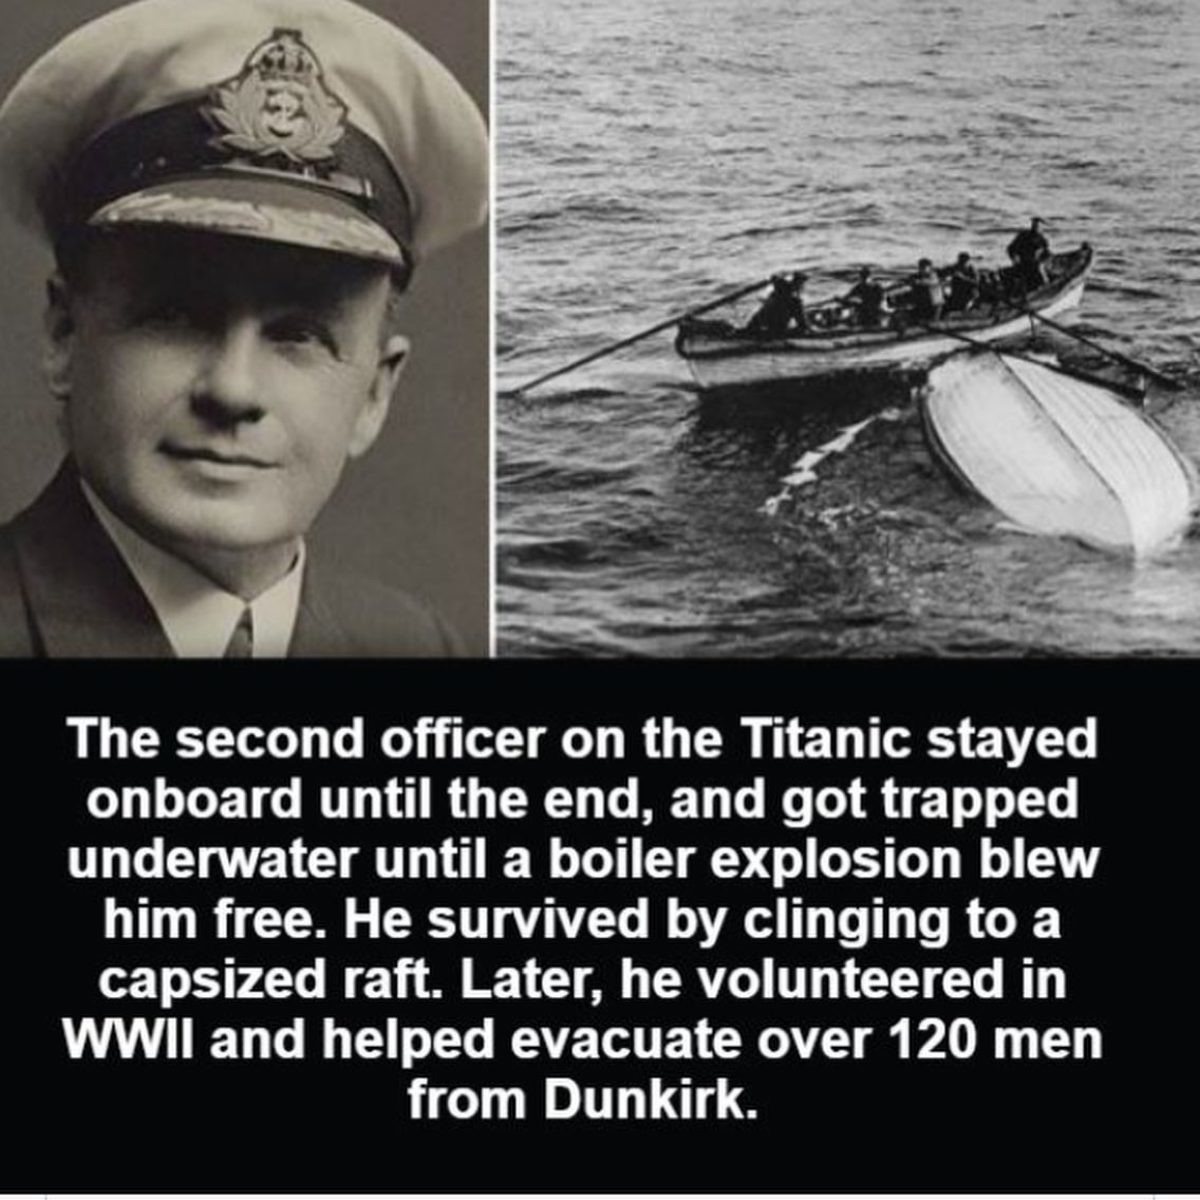 Unsinkable. .. Unpopular opinion about Titanic and Miracles of Dunkirk here, I don't mind the red thumbs and the blocks: Some brave and heroic people showed themselves on thos